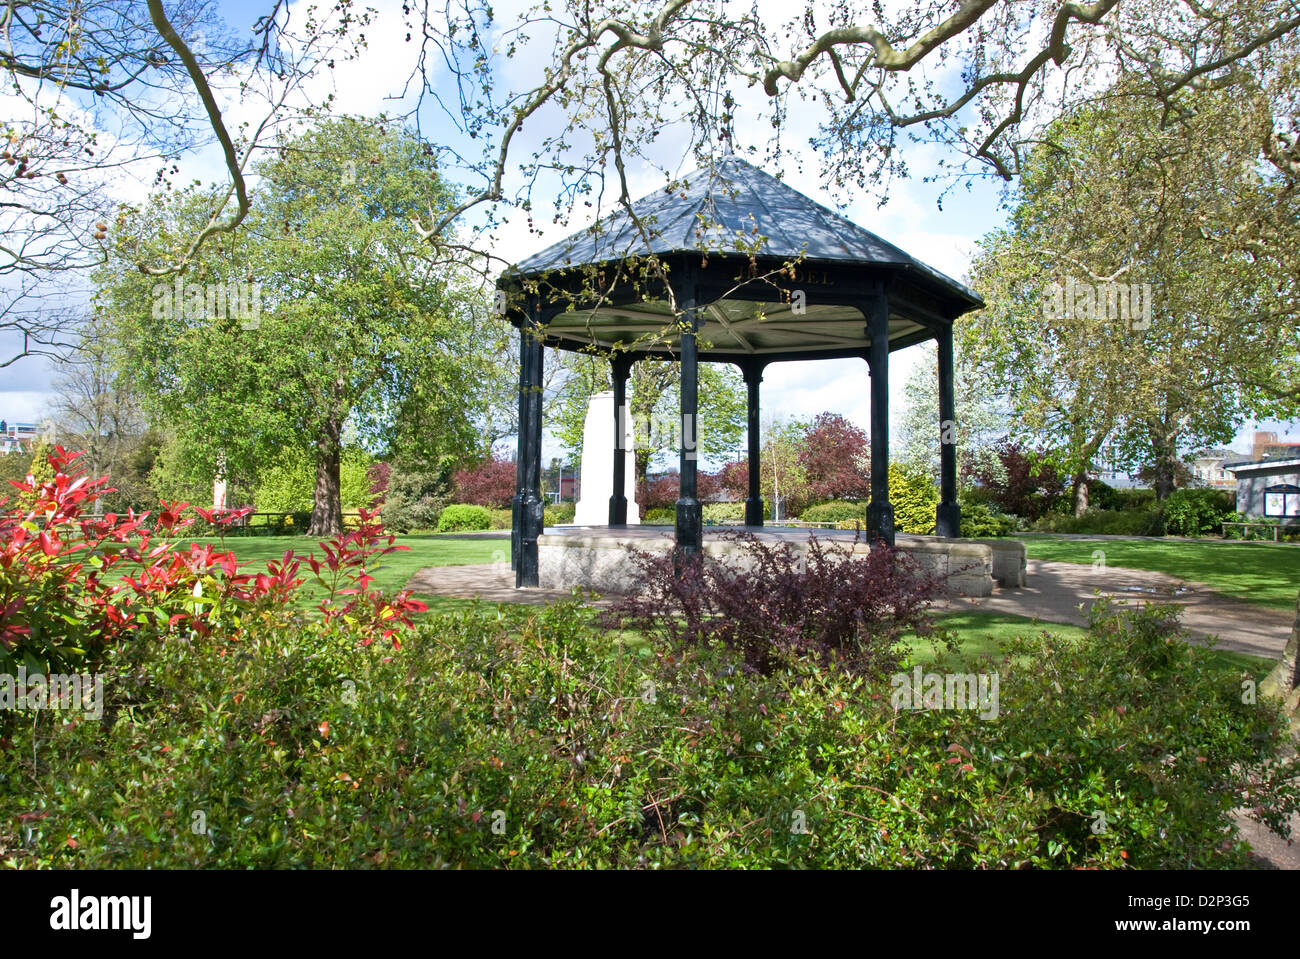 Brenchley Gardens Maidstone - Stock Image